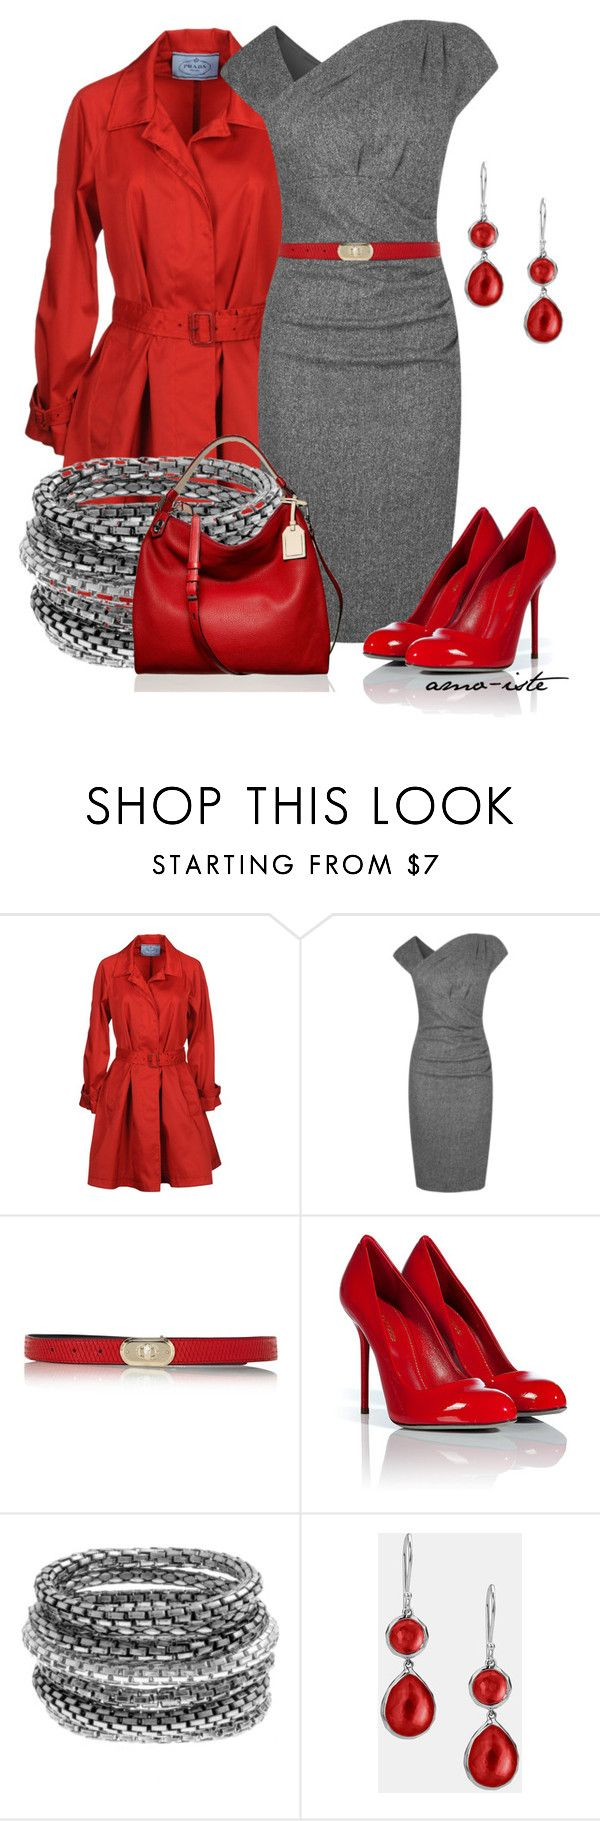 """""""Dress it Up"""" by amo-iste ❤ liked on Polyvore featuring Prada, L.K.Bennett, Karen Millen, Sergio Rossi, Ippolita and Reed Krakoff"""